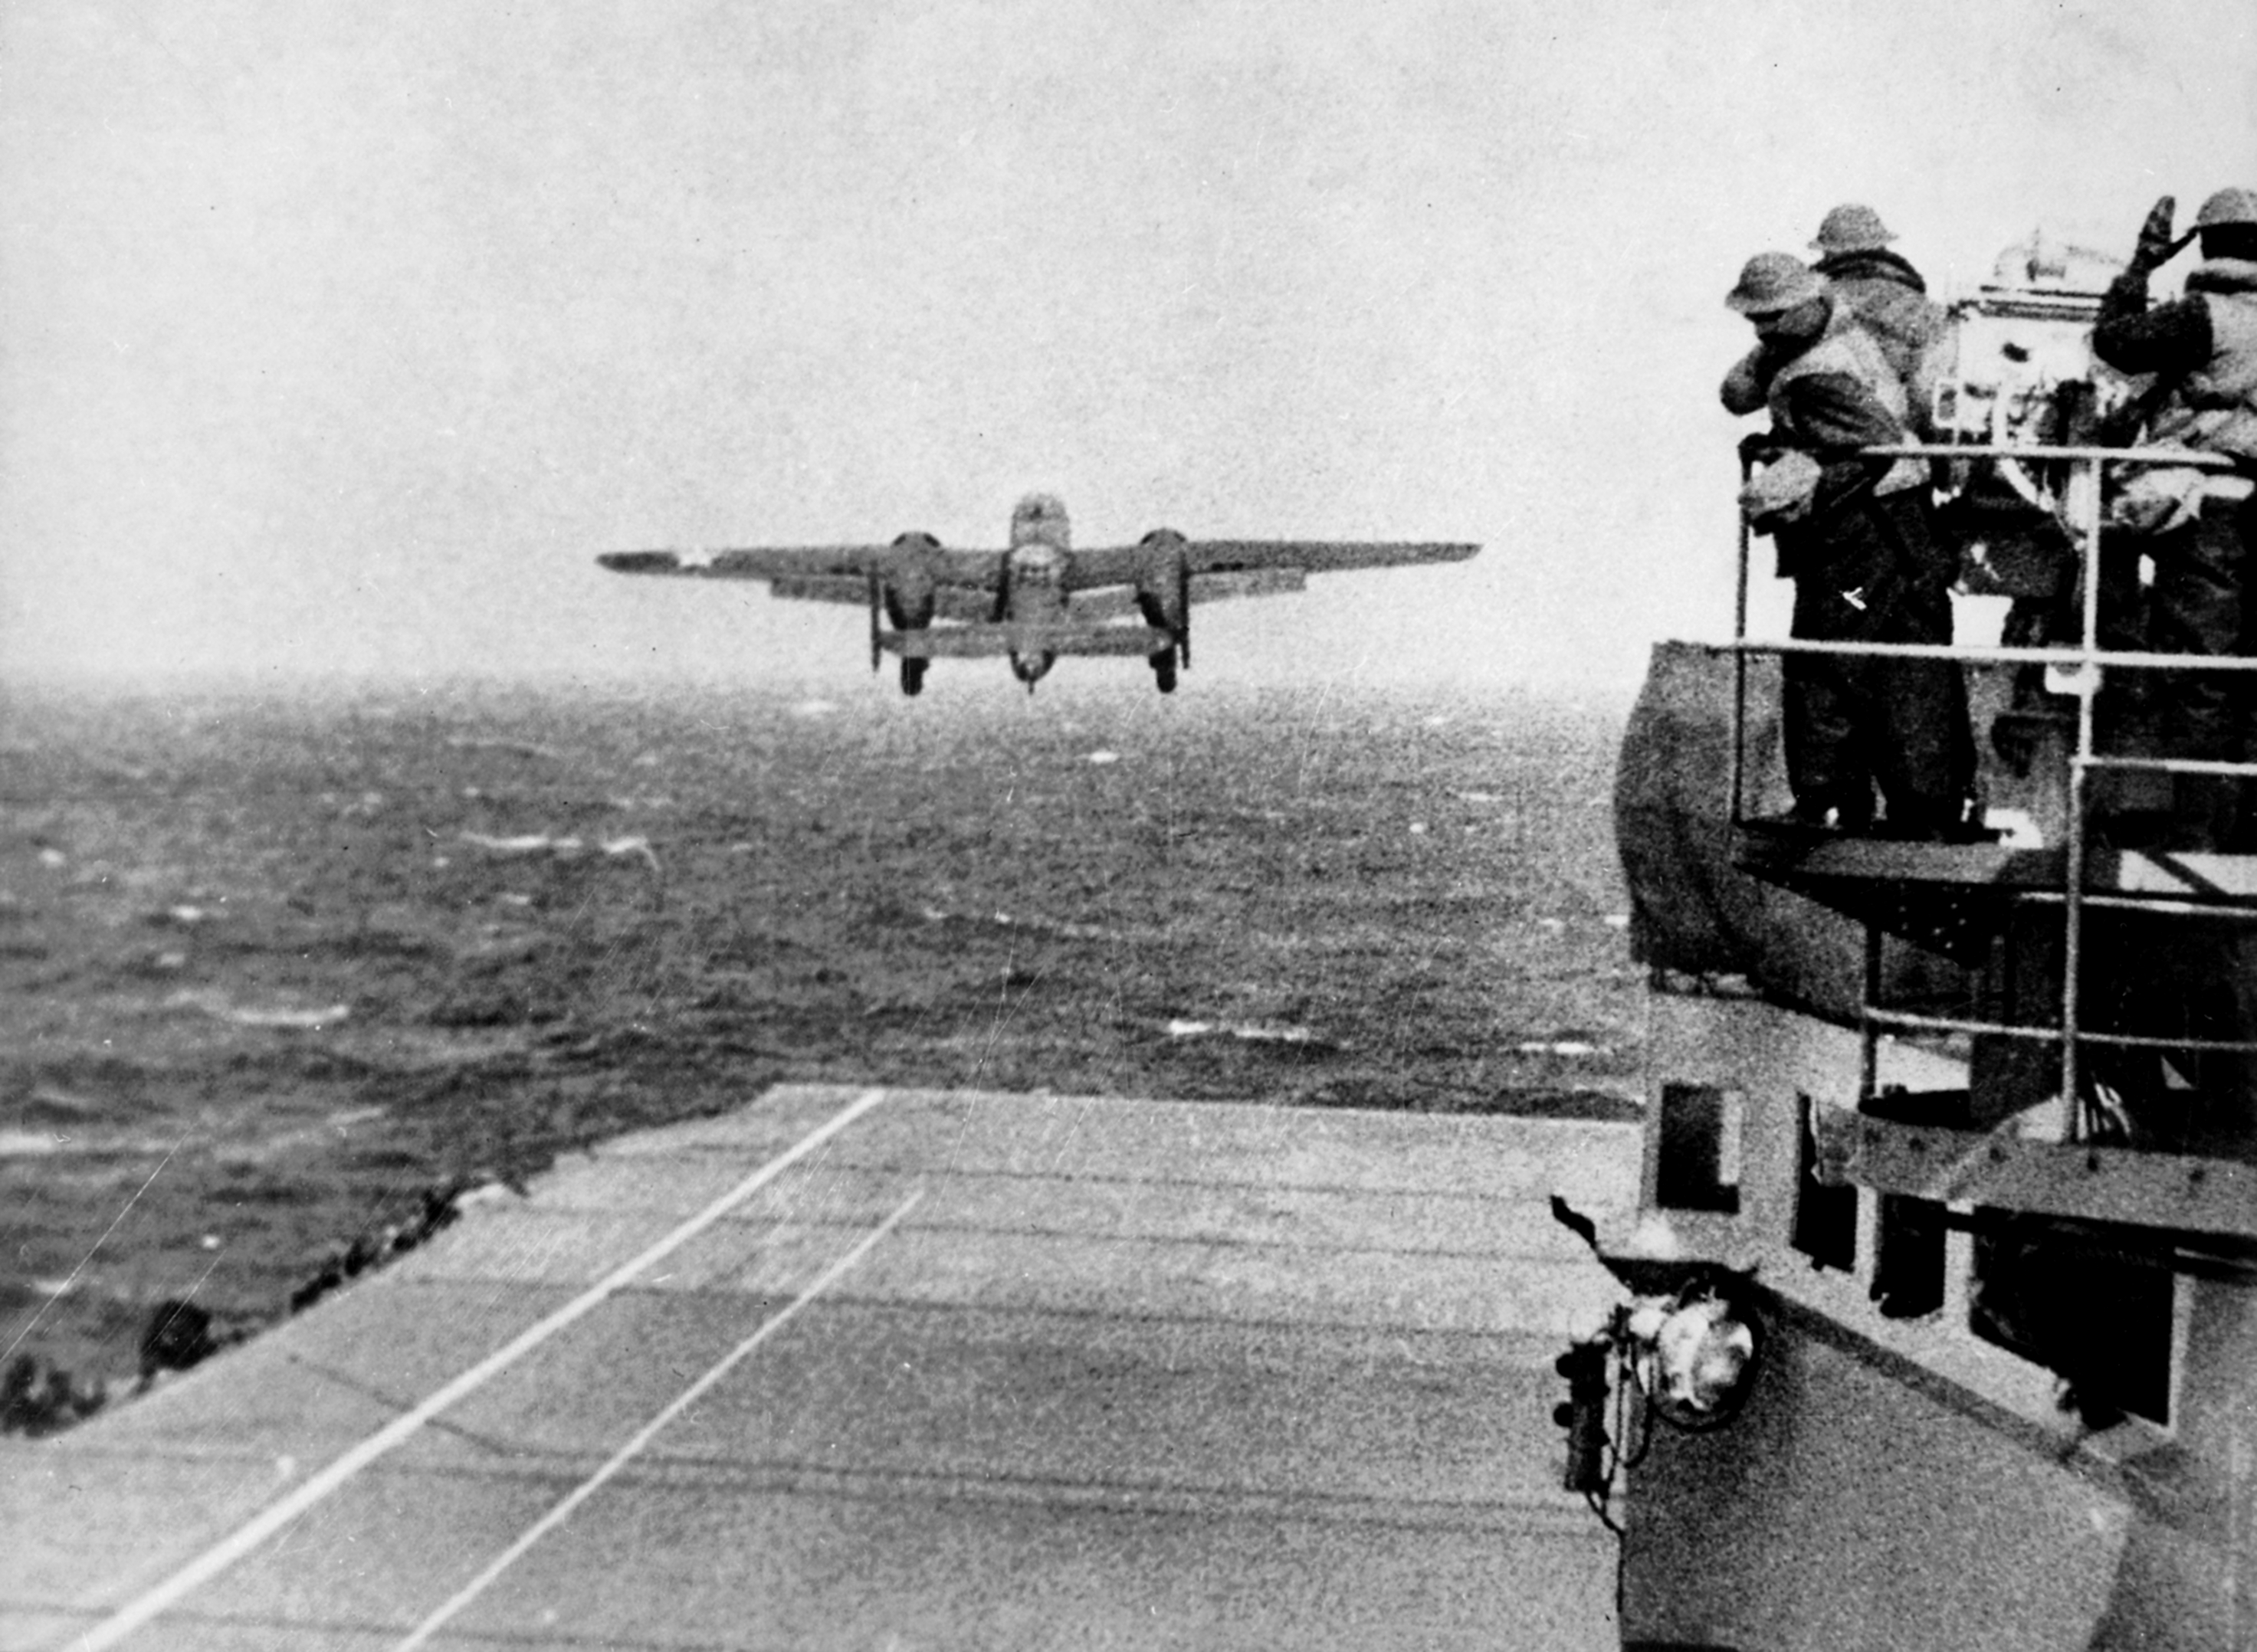 https://upload.wikimedia.org/wikipedia/commons/d/dc/Army_B-25_%28Doolittle_Raid%29.jpg